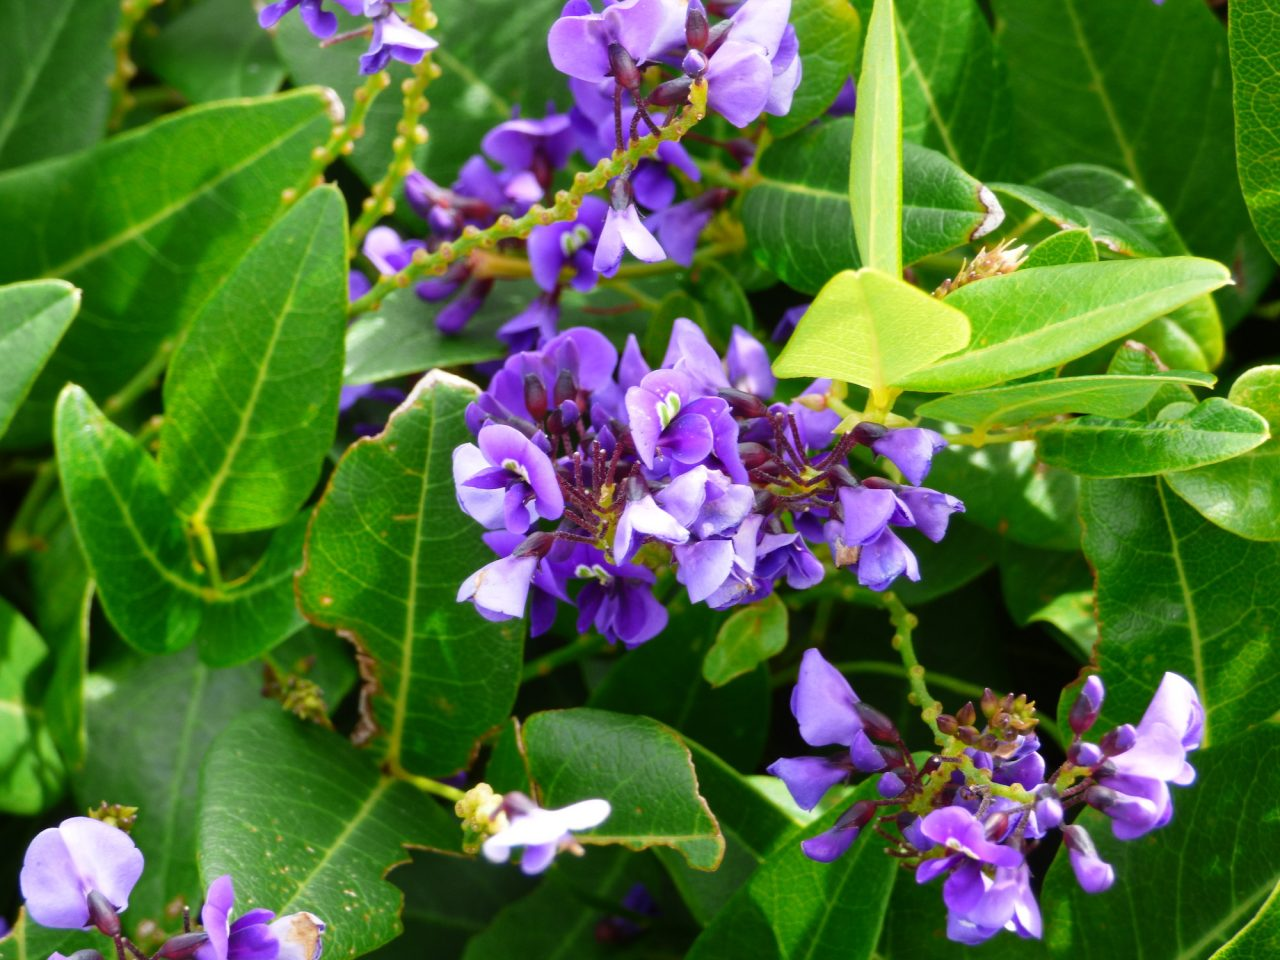 Hardenbergia in bloom during late August. Listen to the mystery of how these plants appeared in an English garden years before European colonization of the Swan River